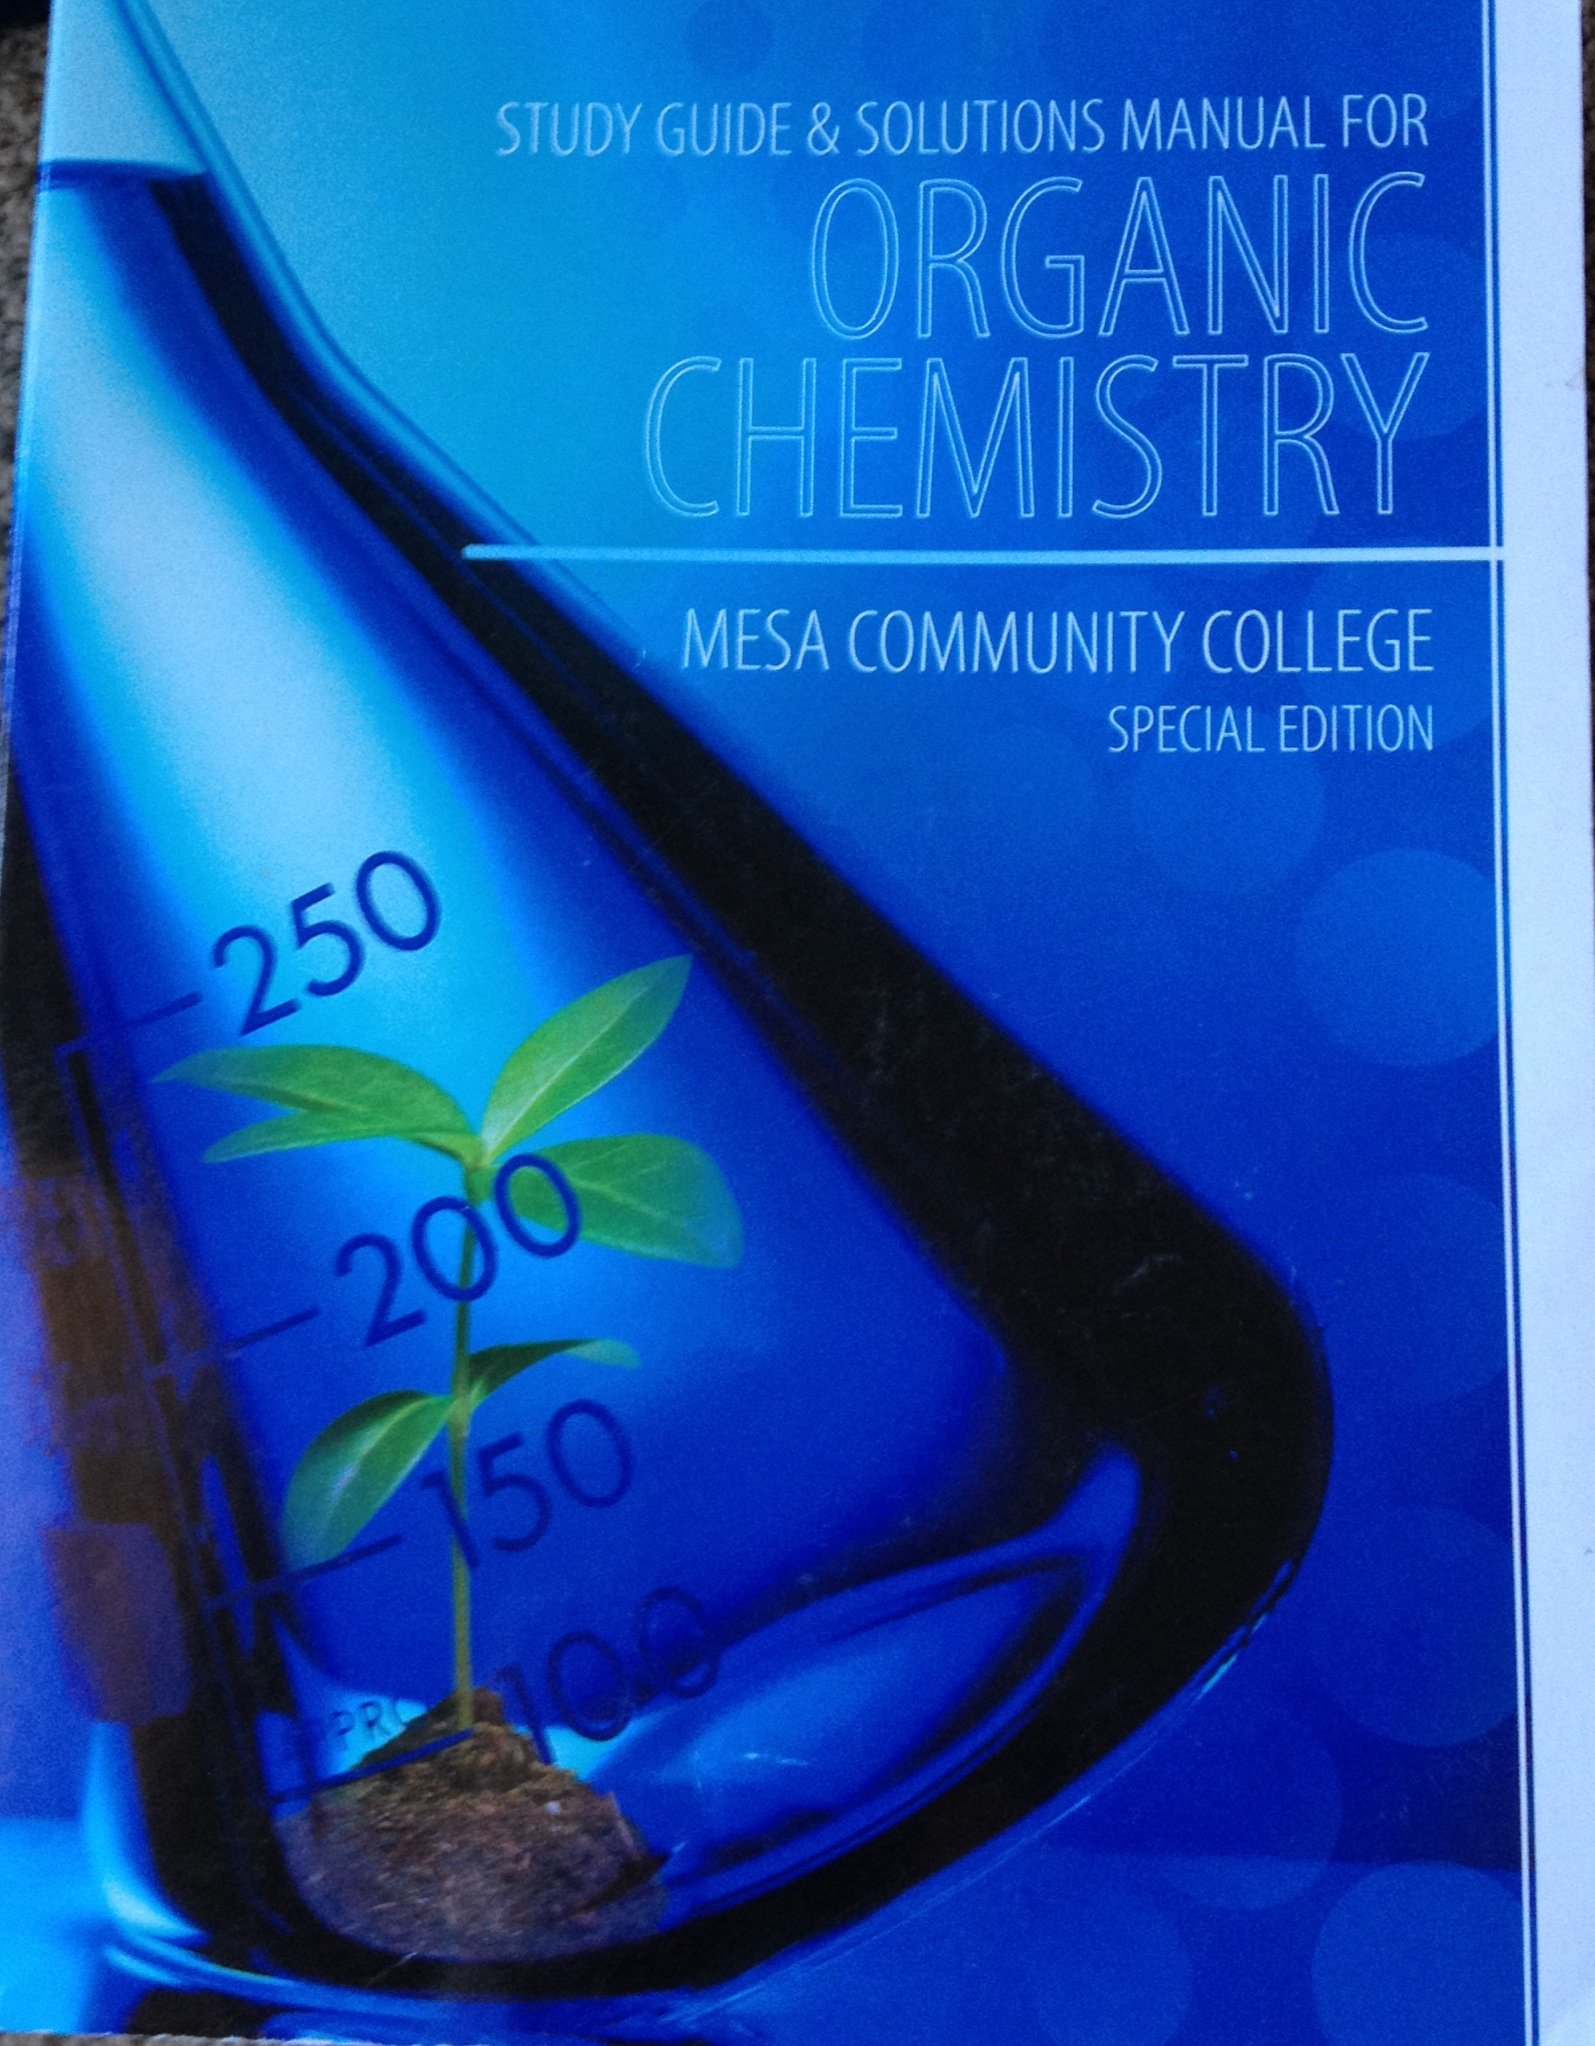 Organic Chemistry Study Guide & Solutions Manual (Mesa Community College  Special Edition): Janice Gorzynski Smith, Erin R. Smith Berk:  9780077672973: ...